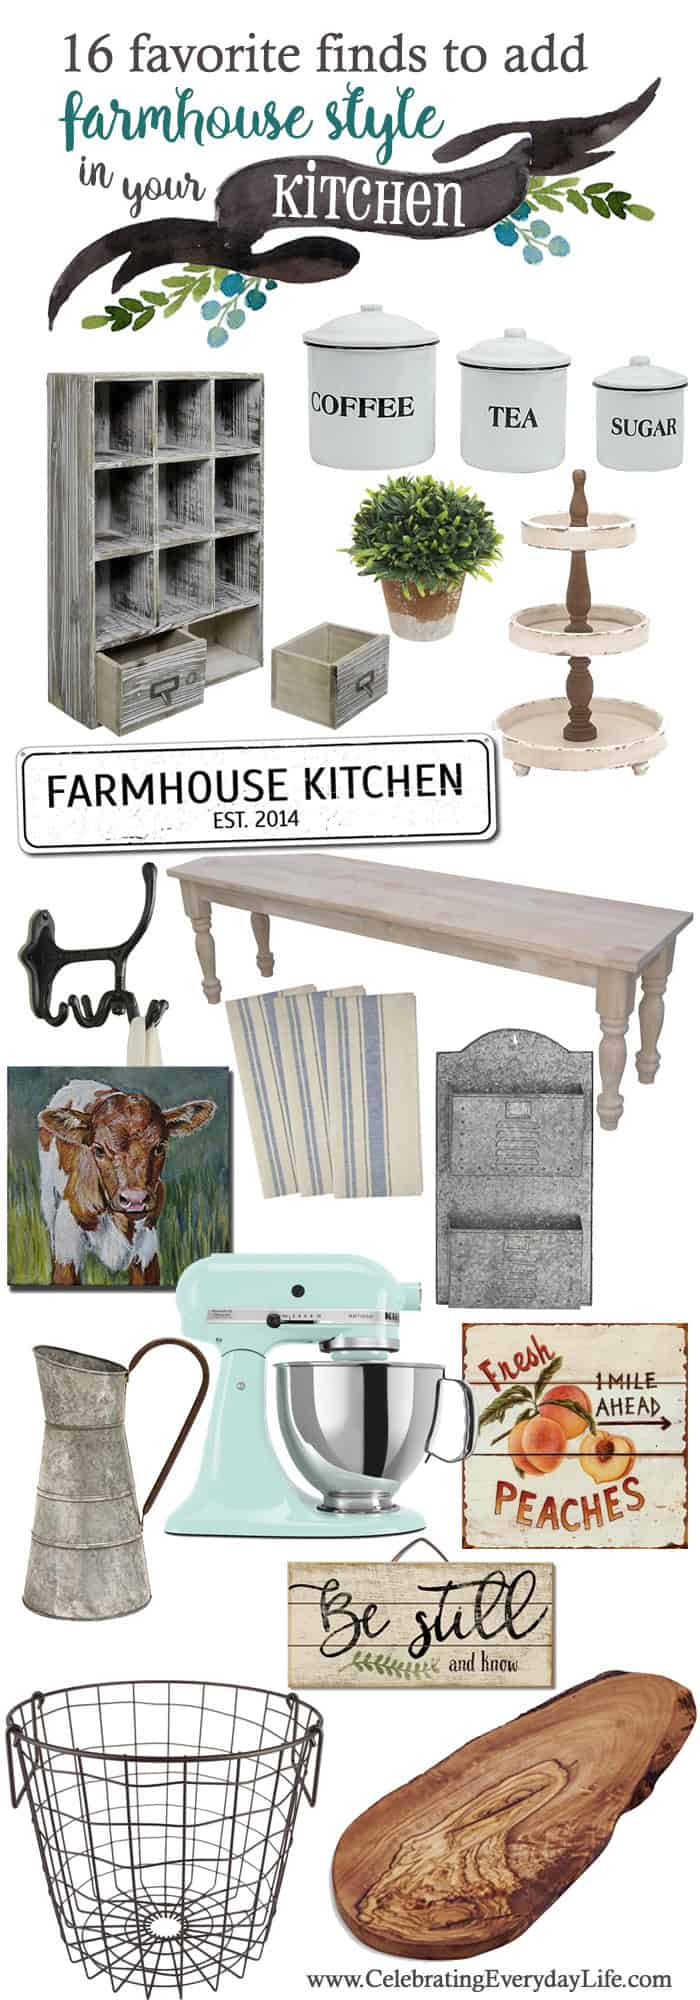 Favorite Farmhouse Kitchen Finds | Celebrating Everyday Life with Jennifer Carroll | www.CelebratingEverydayLife.com